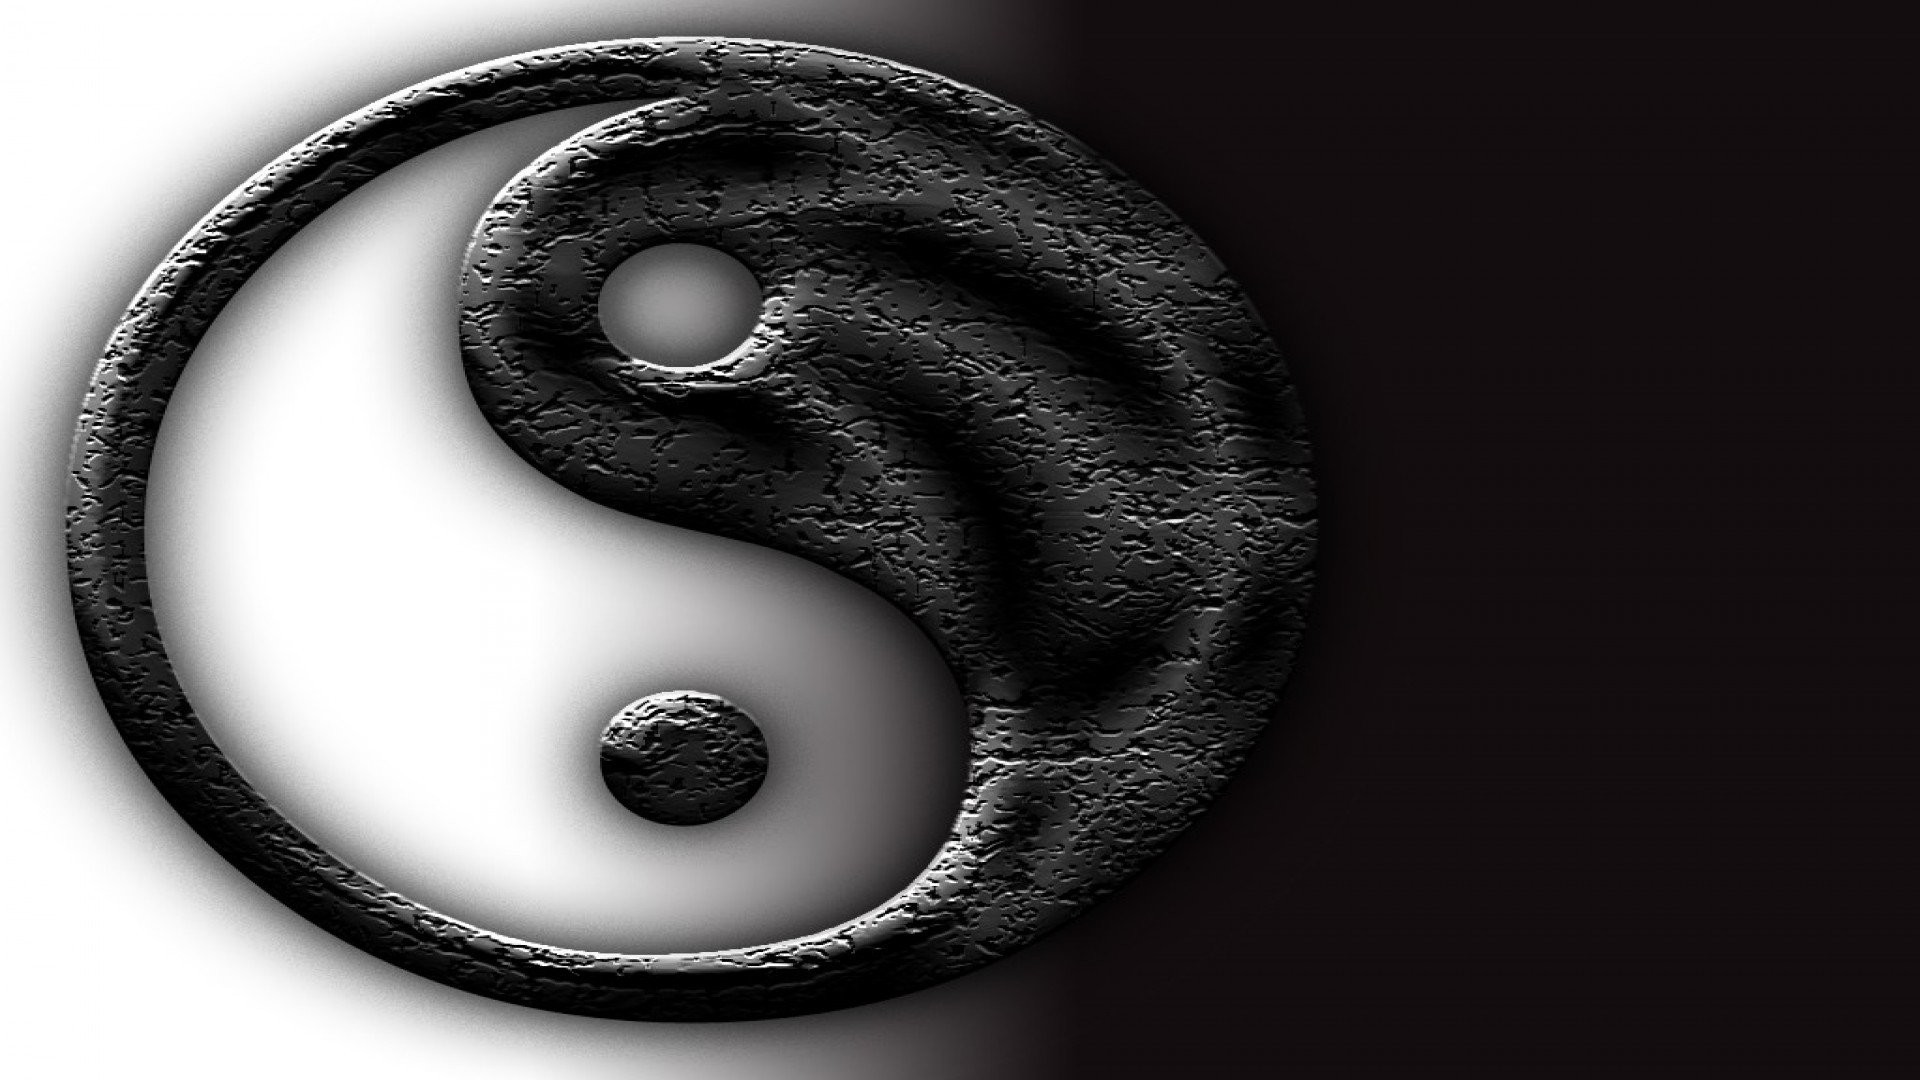 koi fish yin and yang, dragon wallpapers download